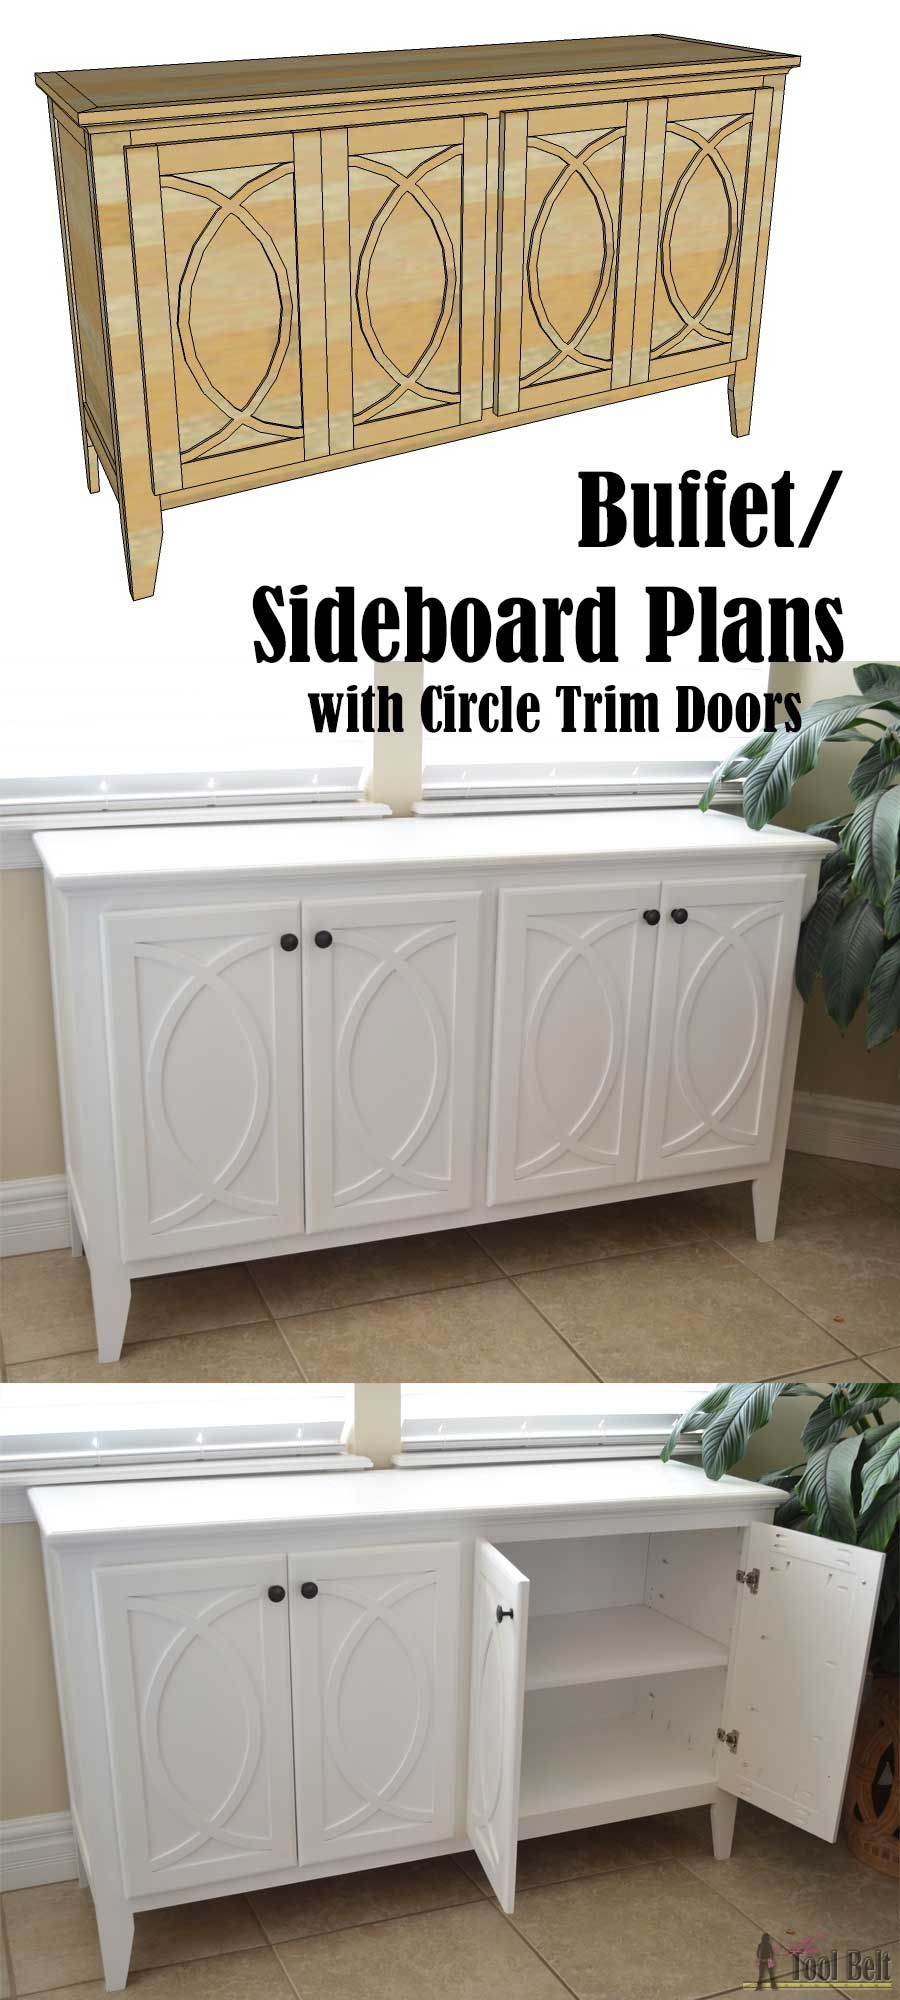 Diy Buffet Sideboard With Circle Trim Doors Sideboard Furniture